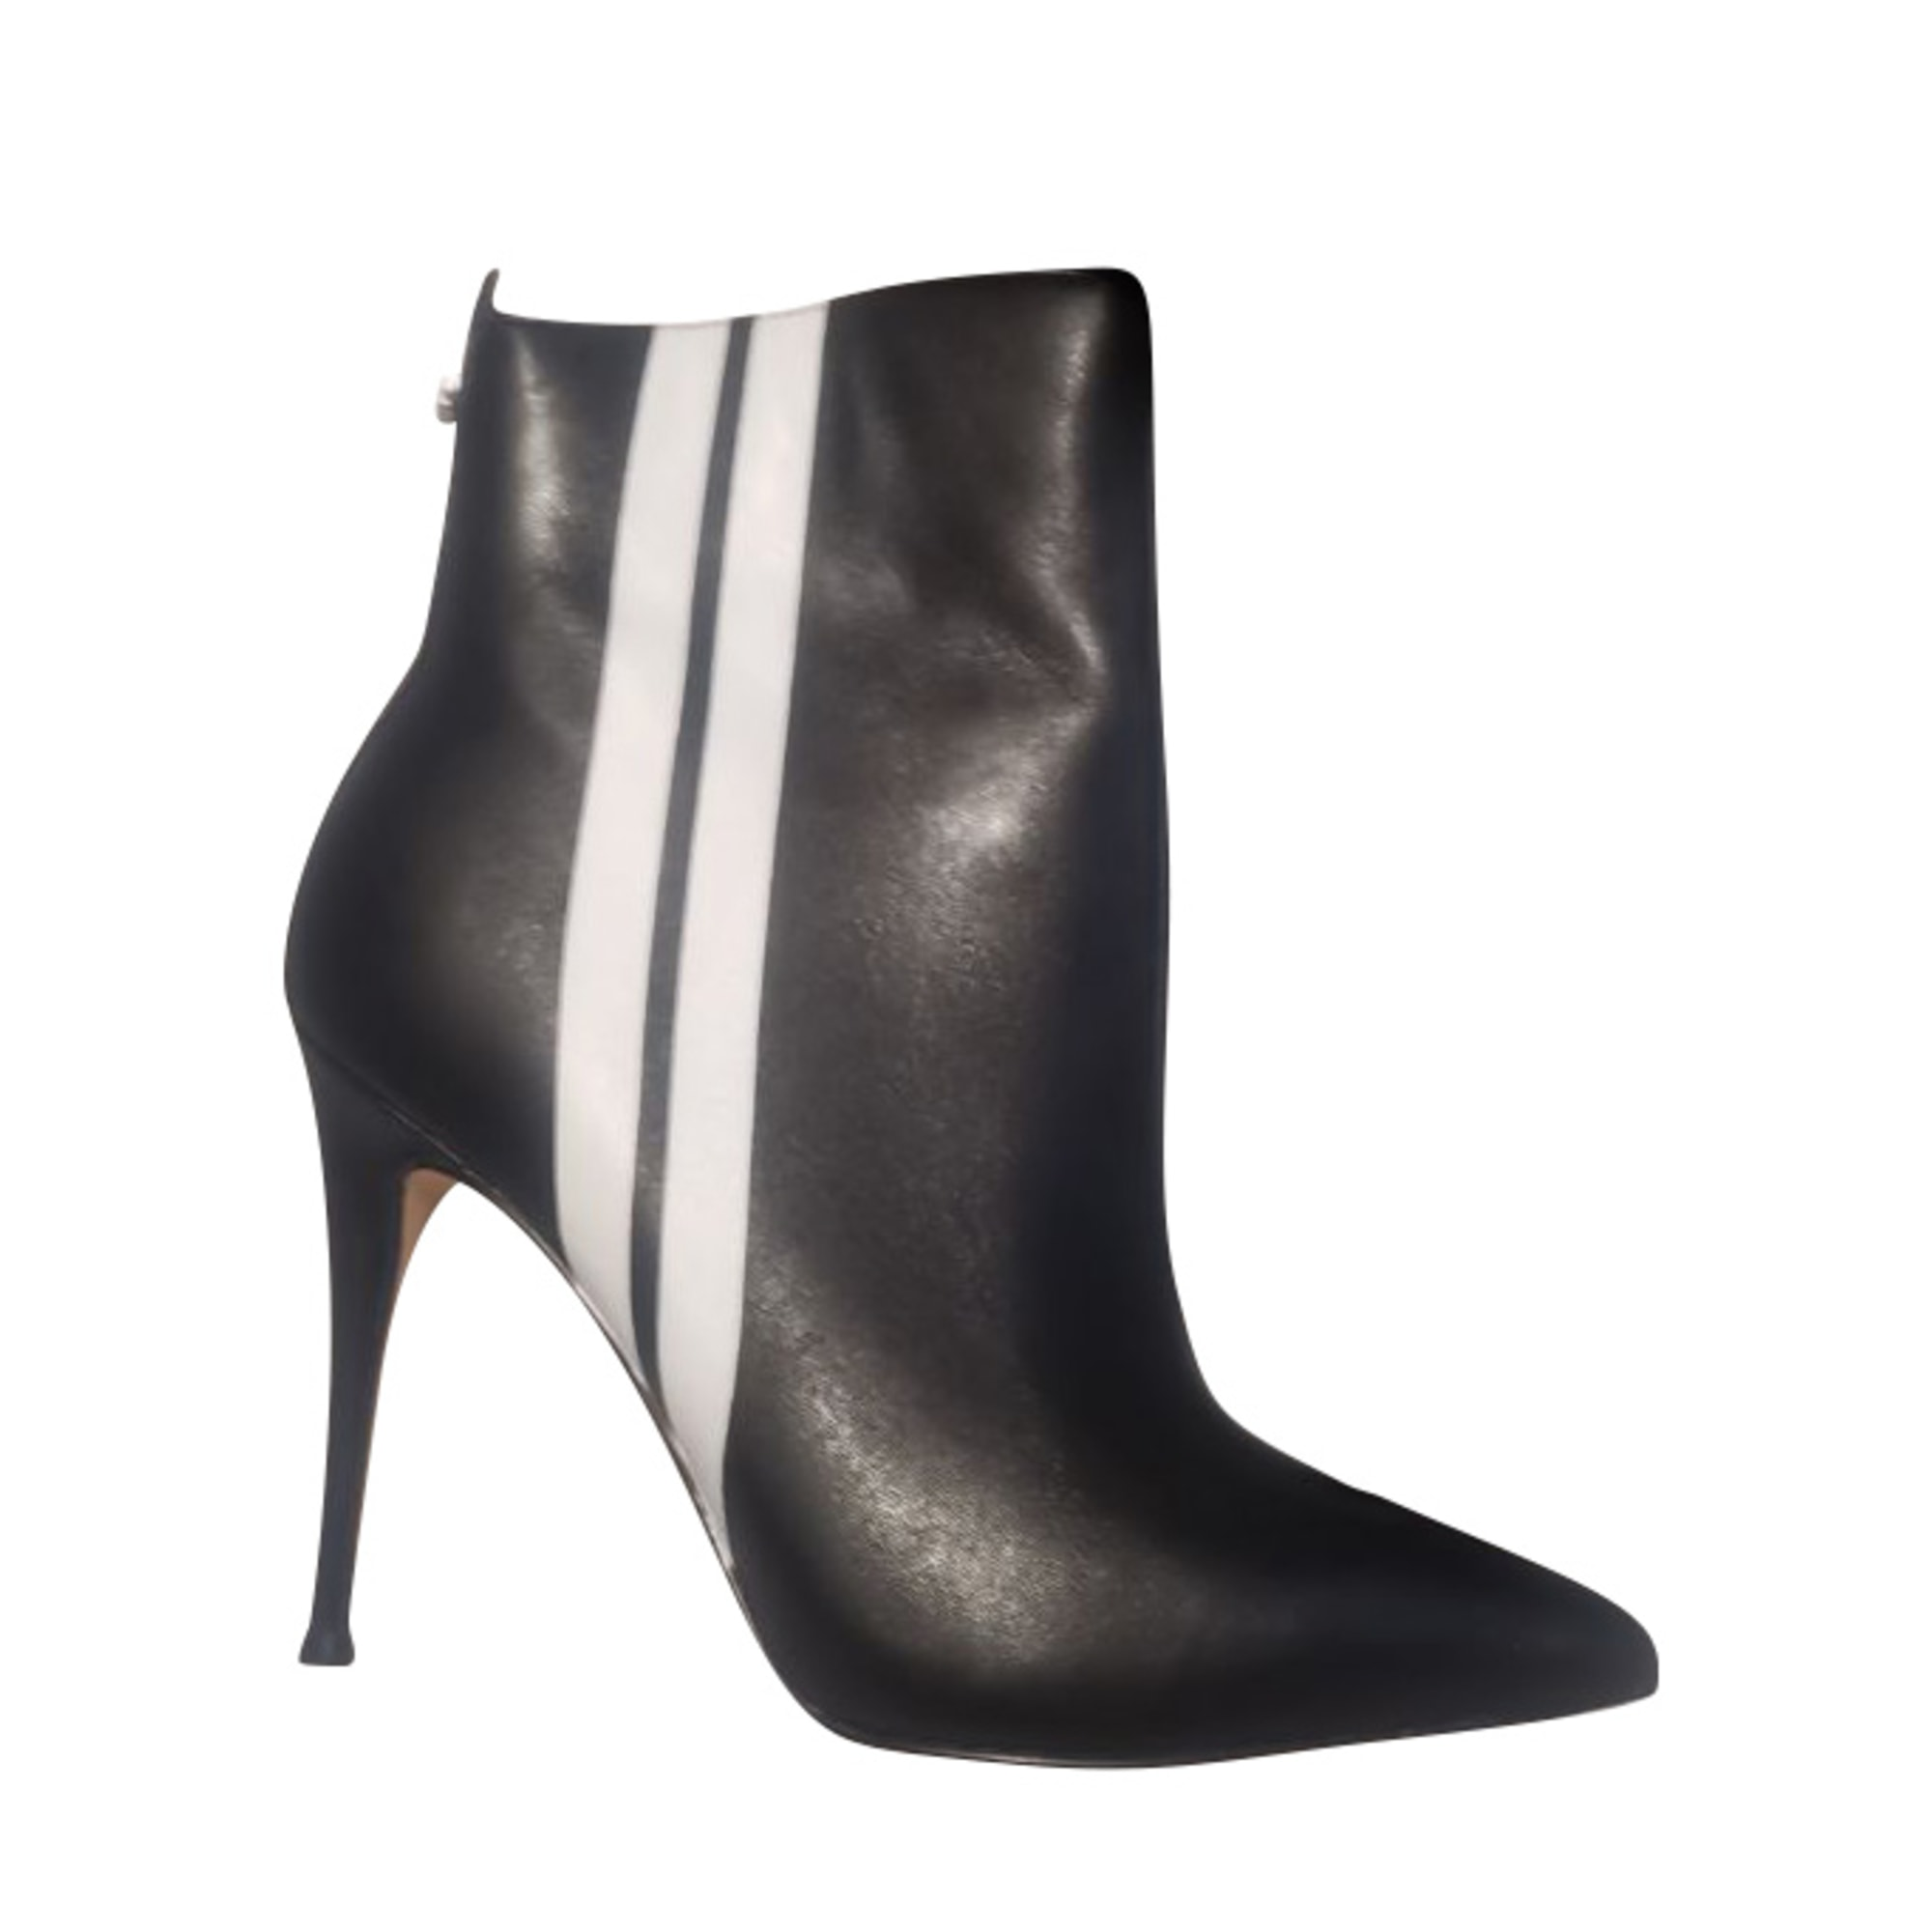 High Heel Ankle Boots GUESS Black